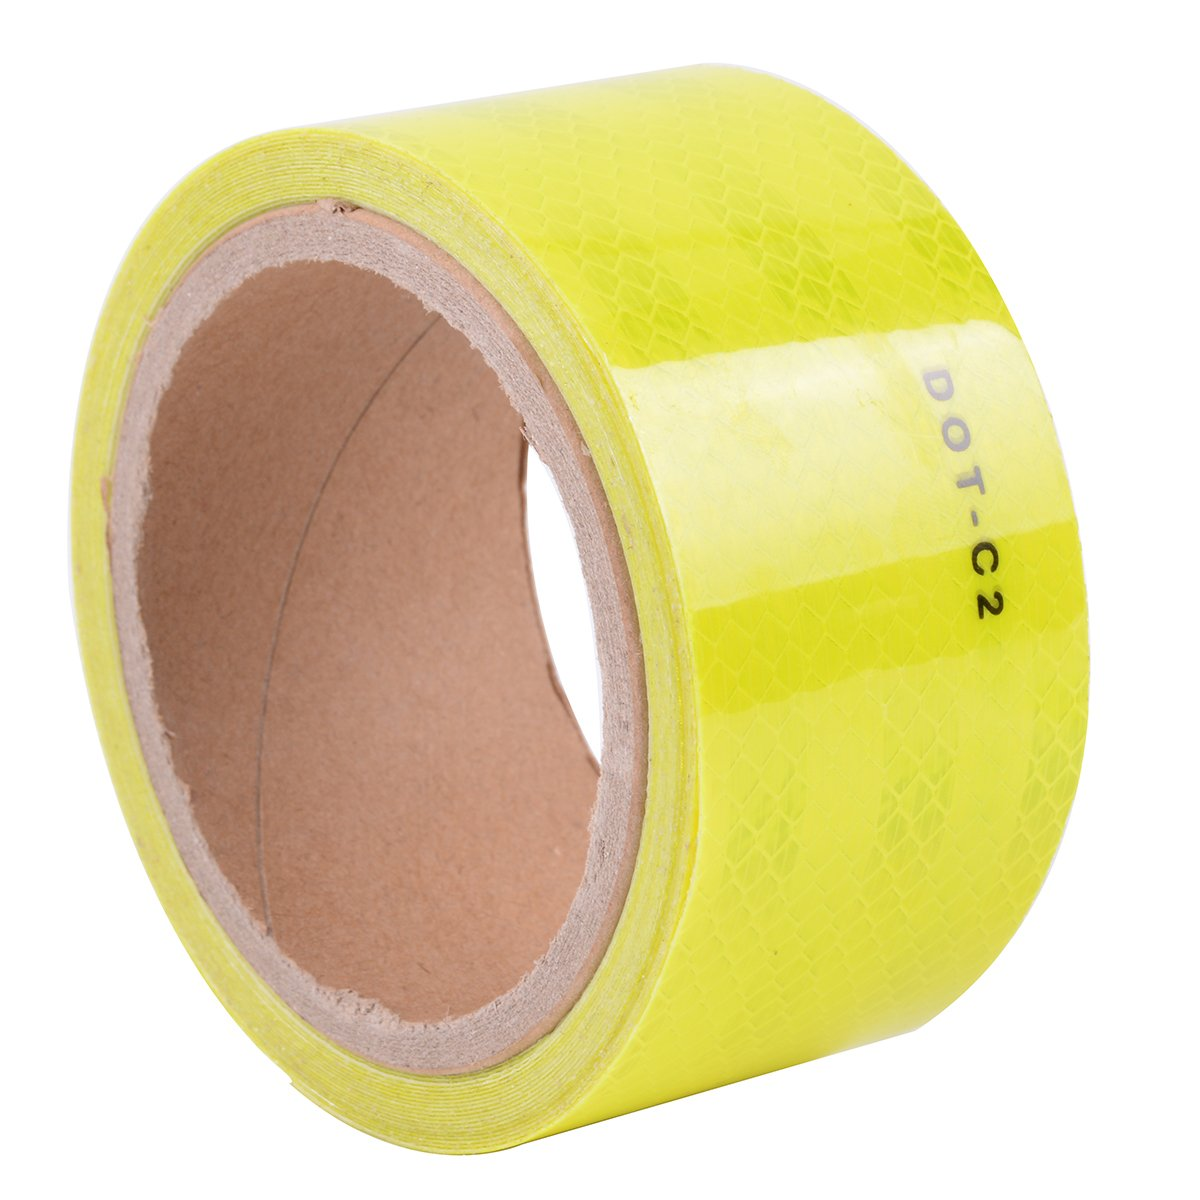 Diamond Grade Conspicuity Reflective Safety Tape DOT-C2 (Fluorescent Yellow)